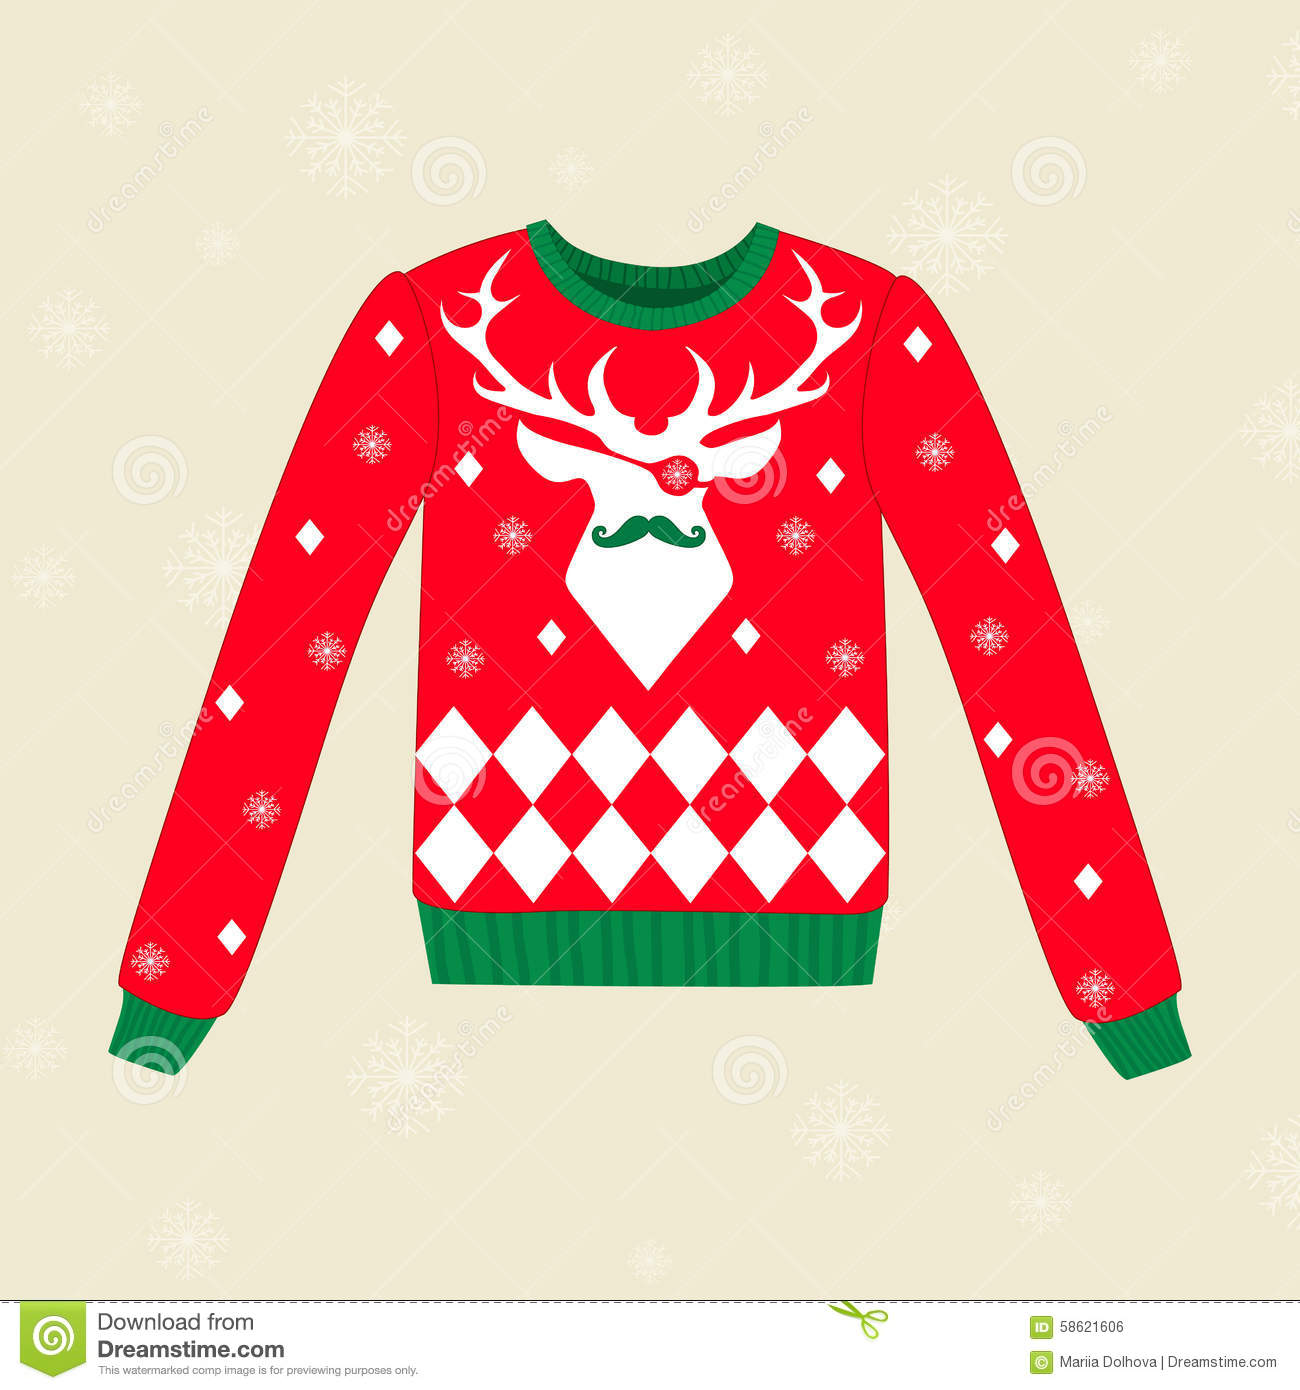 759dcd5ed Christmas red ugly vector sweater with deer. Designers Also Selected These  Stock Illustrations